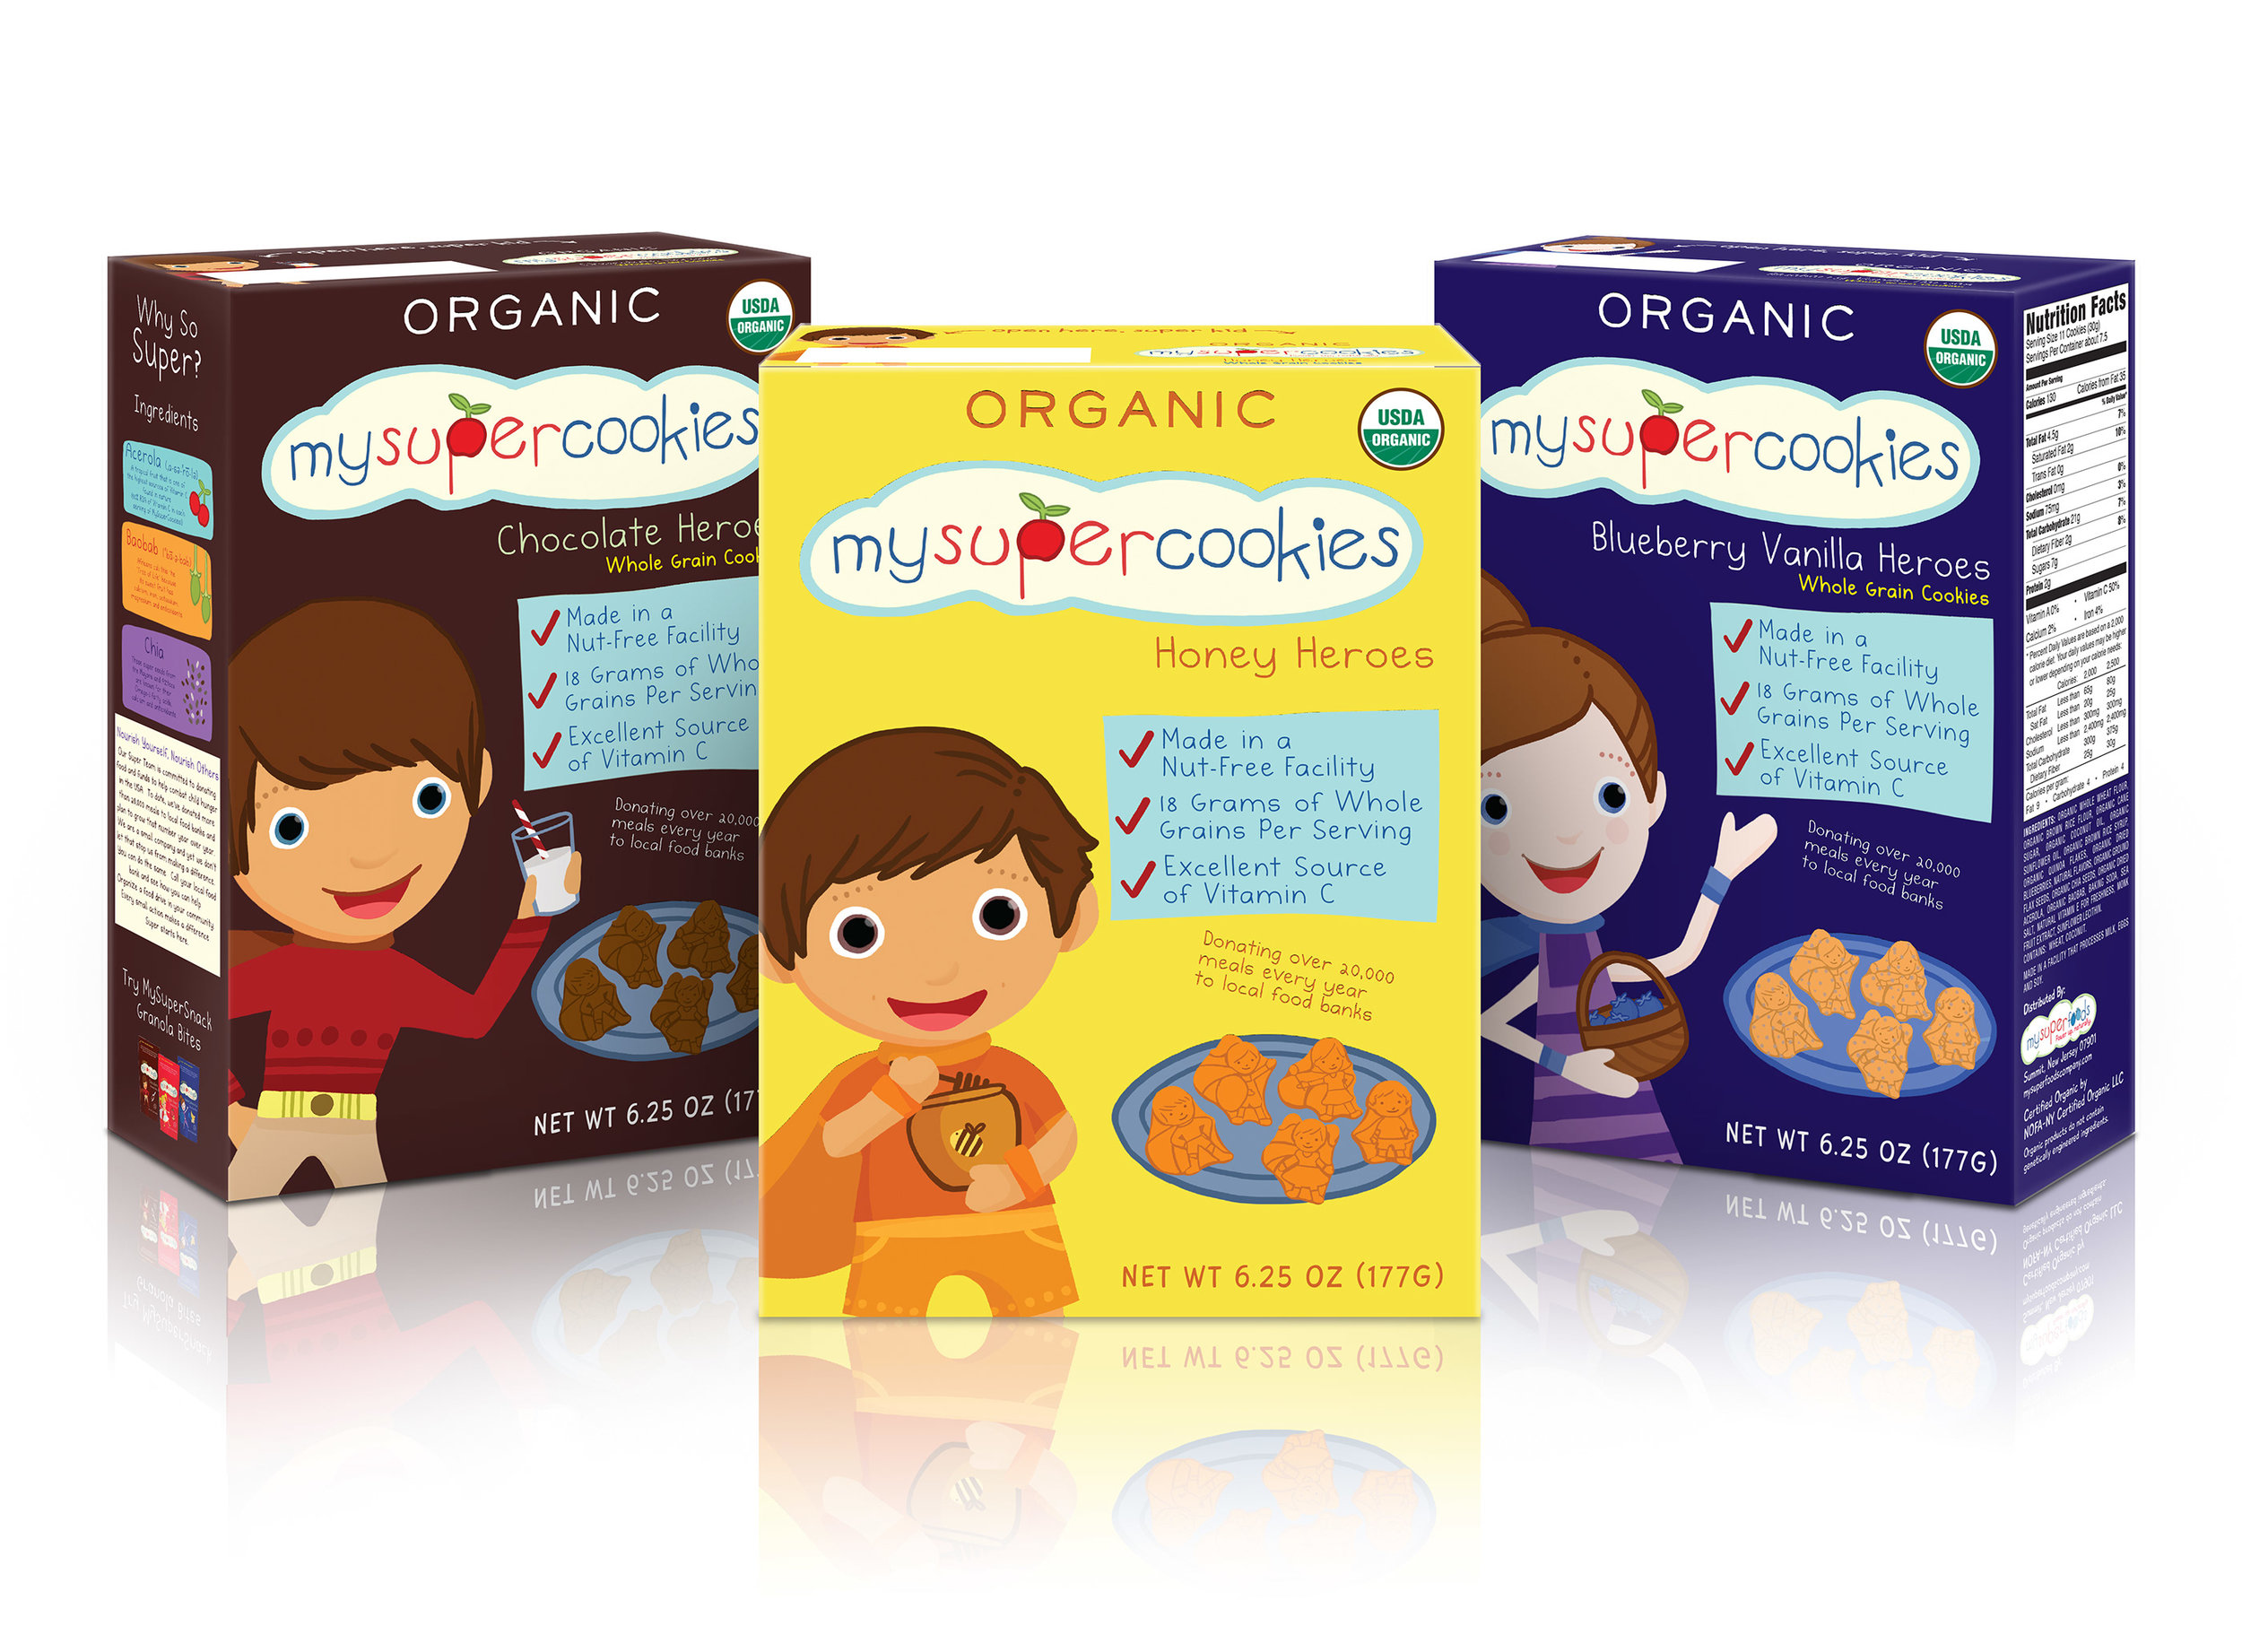 Character, logo and package design for MySuperFoods Company